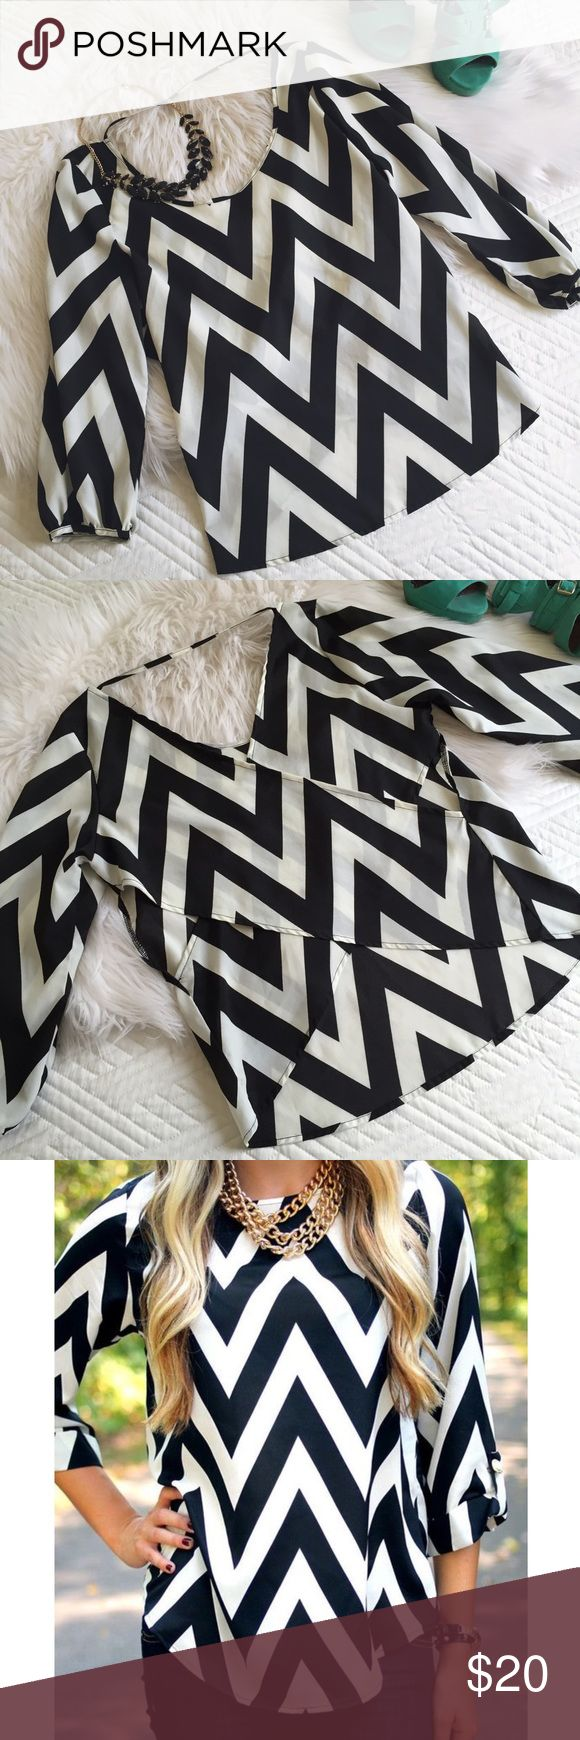 CHEVRON TOP Trendy black and white chevron top. EUC. Perfect for work or lunch with friends!  Has thin neck strap and unique cross-back design with peek-a-boo sides and lower back (shown in photo 2 above).   100% polyester. Dry clean only. Foreign Exchange Tops Blouses